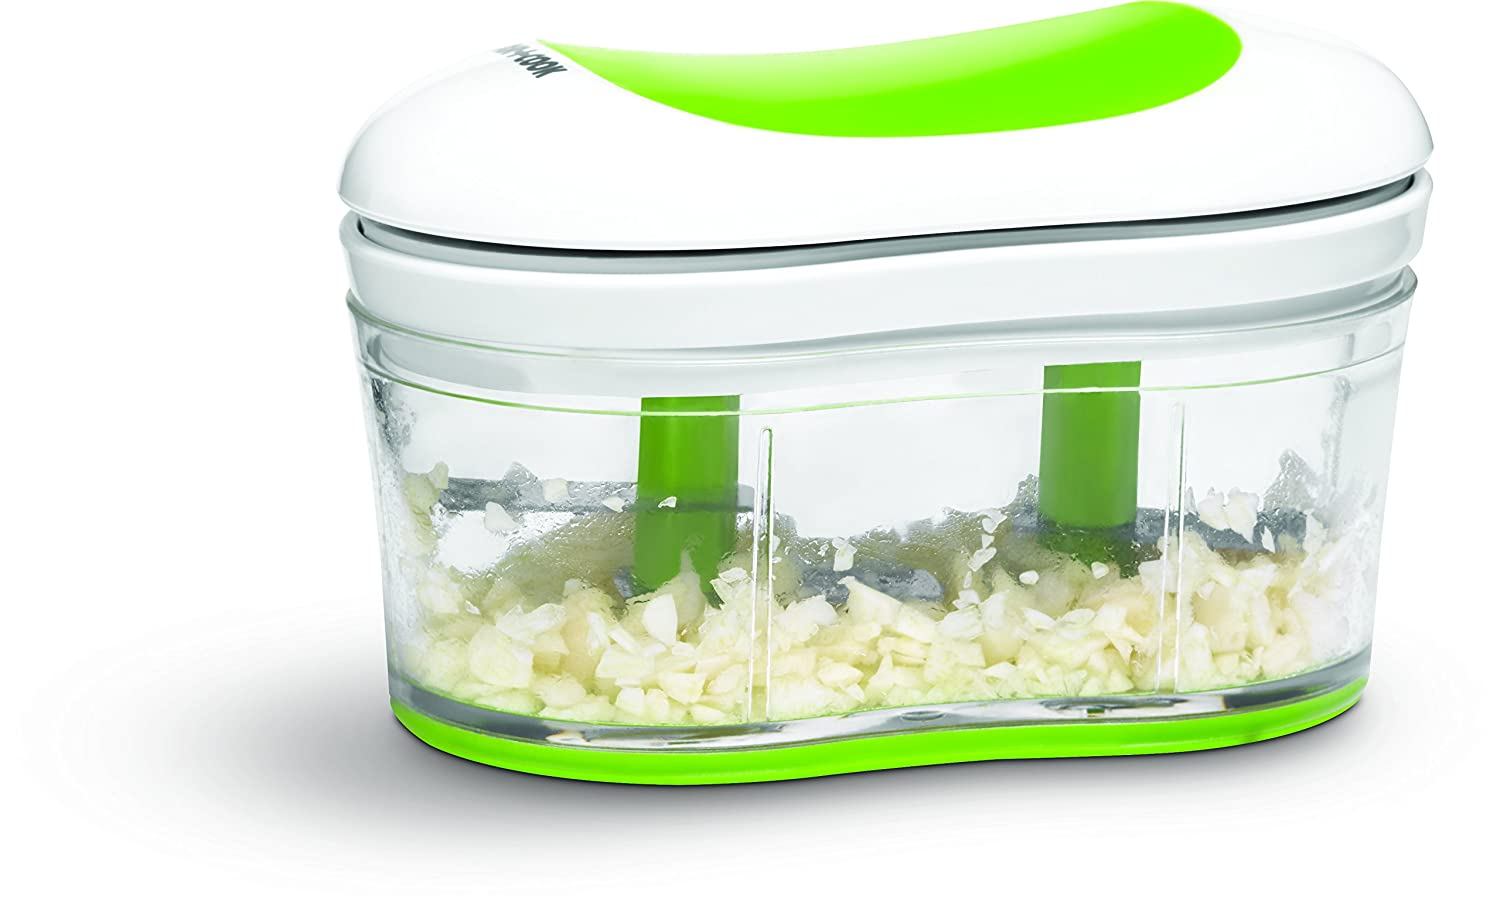 Amazon.com: Art and Cook Hand Held Garlic and Herb Chopper, Green ...